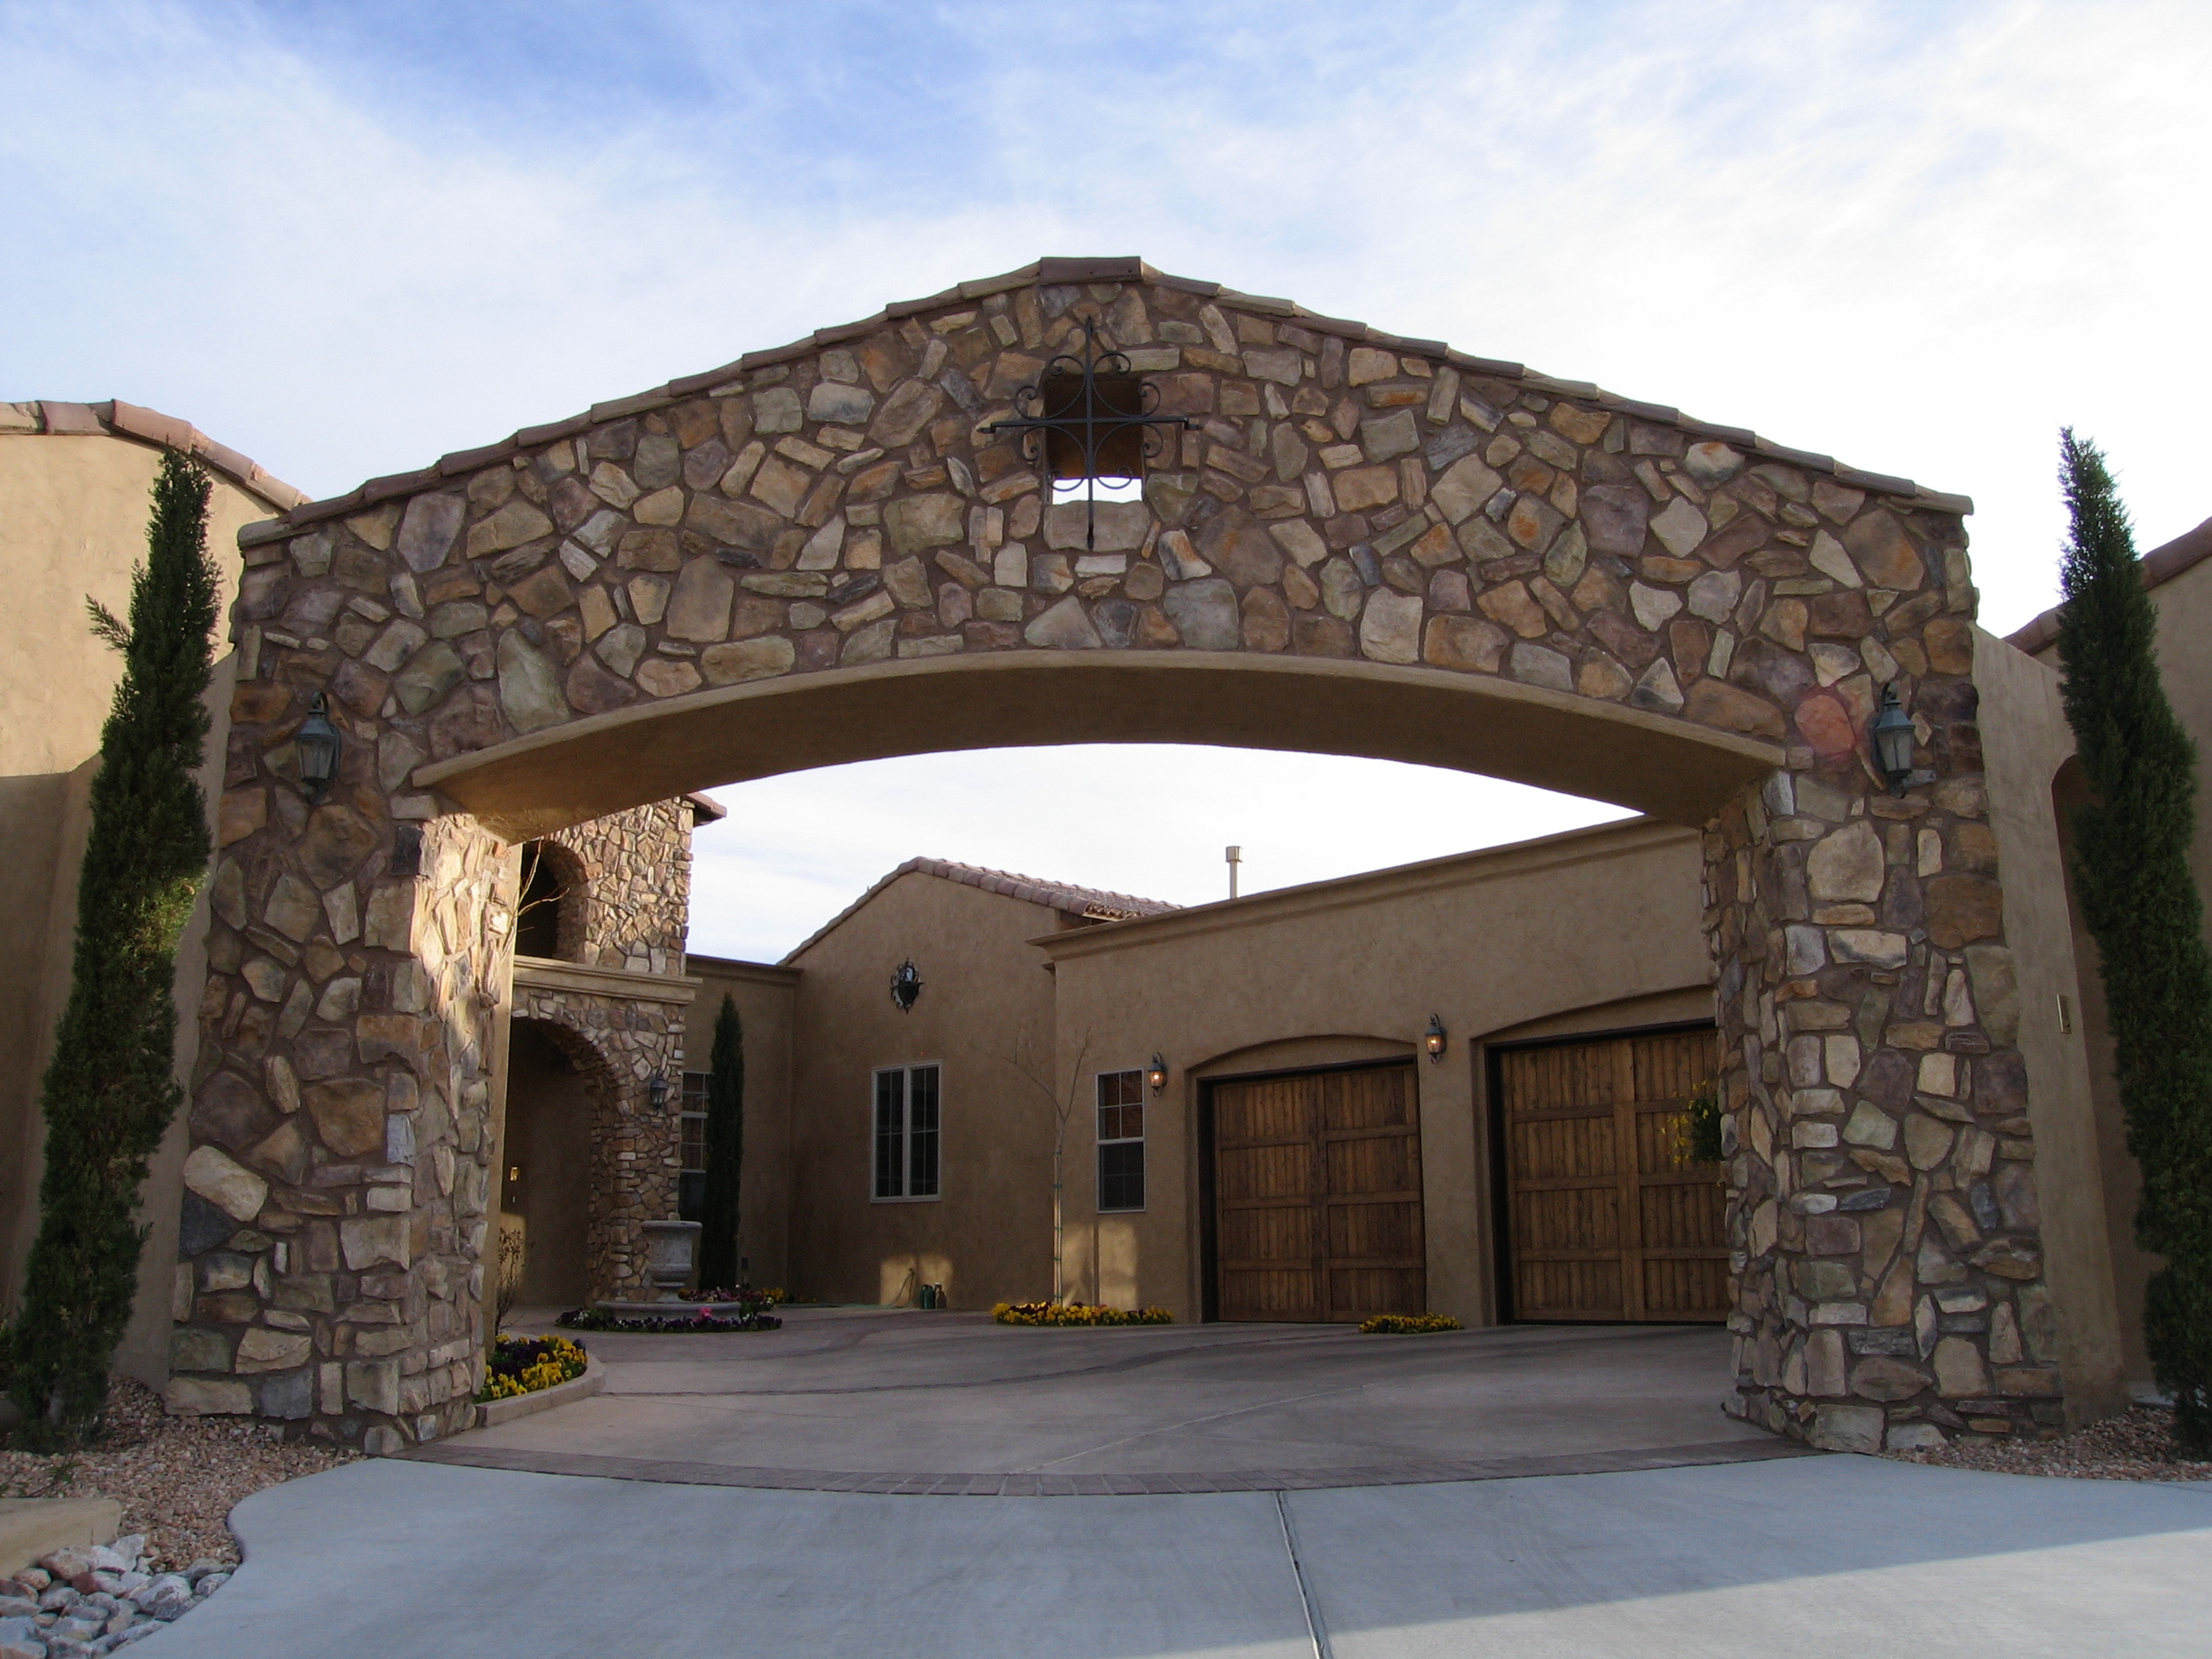 Multi Award Winning Builder   Let Casa Bella Construction, an award winning builder, create your beautiful and enduring home. A home that is both amazing and functional, marrying elegance with practicality. A home that articulates who you are and welcomes those you love.